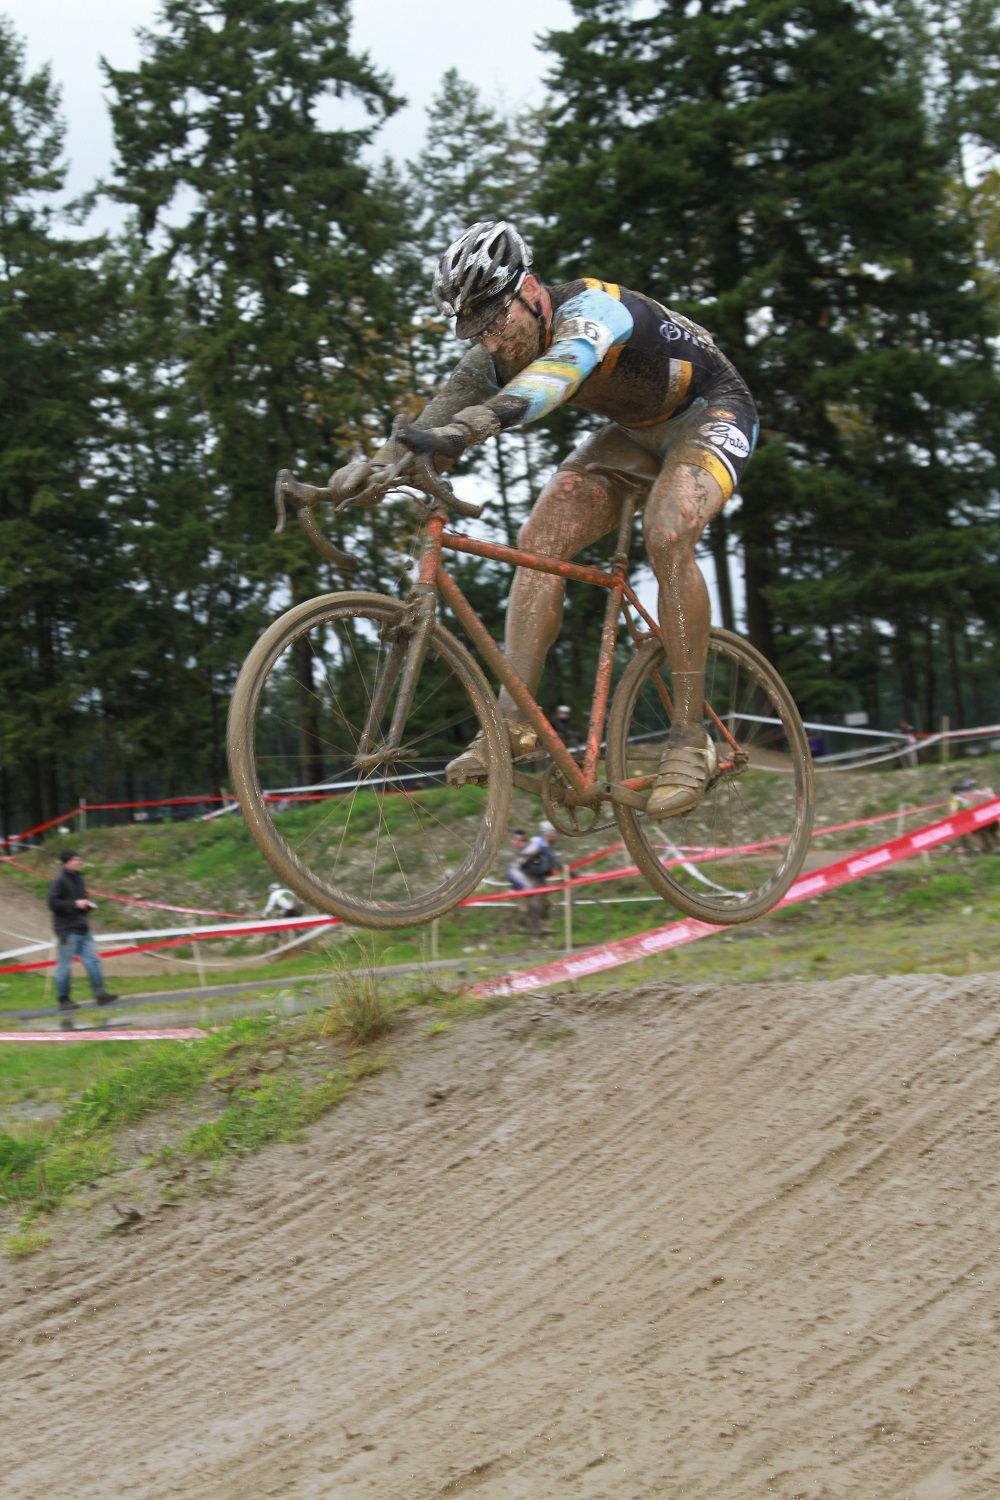 Cross racer flying through the air atop his bicycle equipped with Gates Carbon Drive belt system